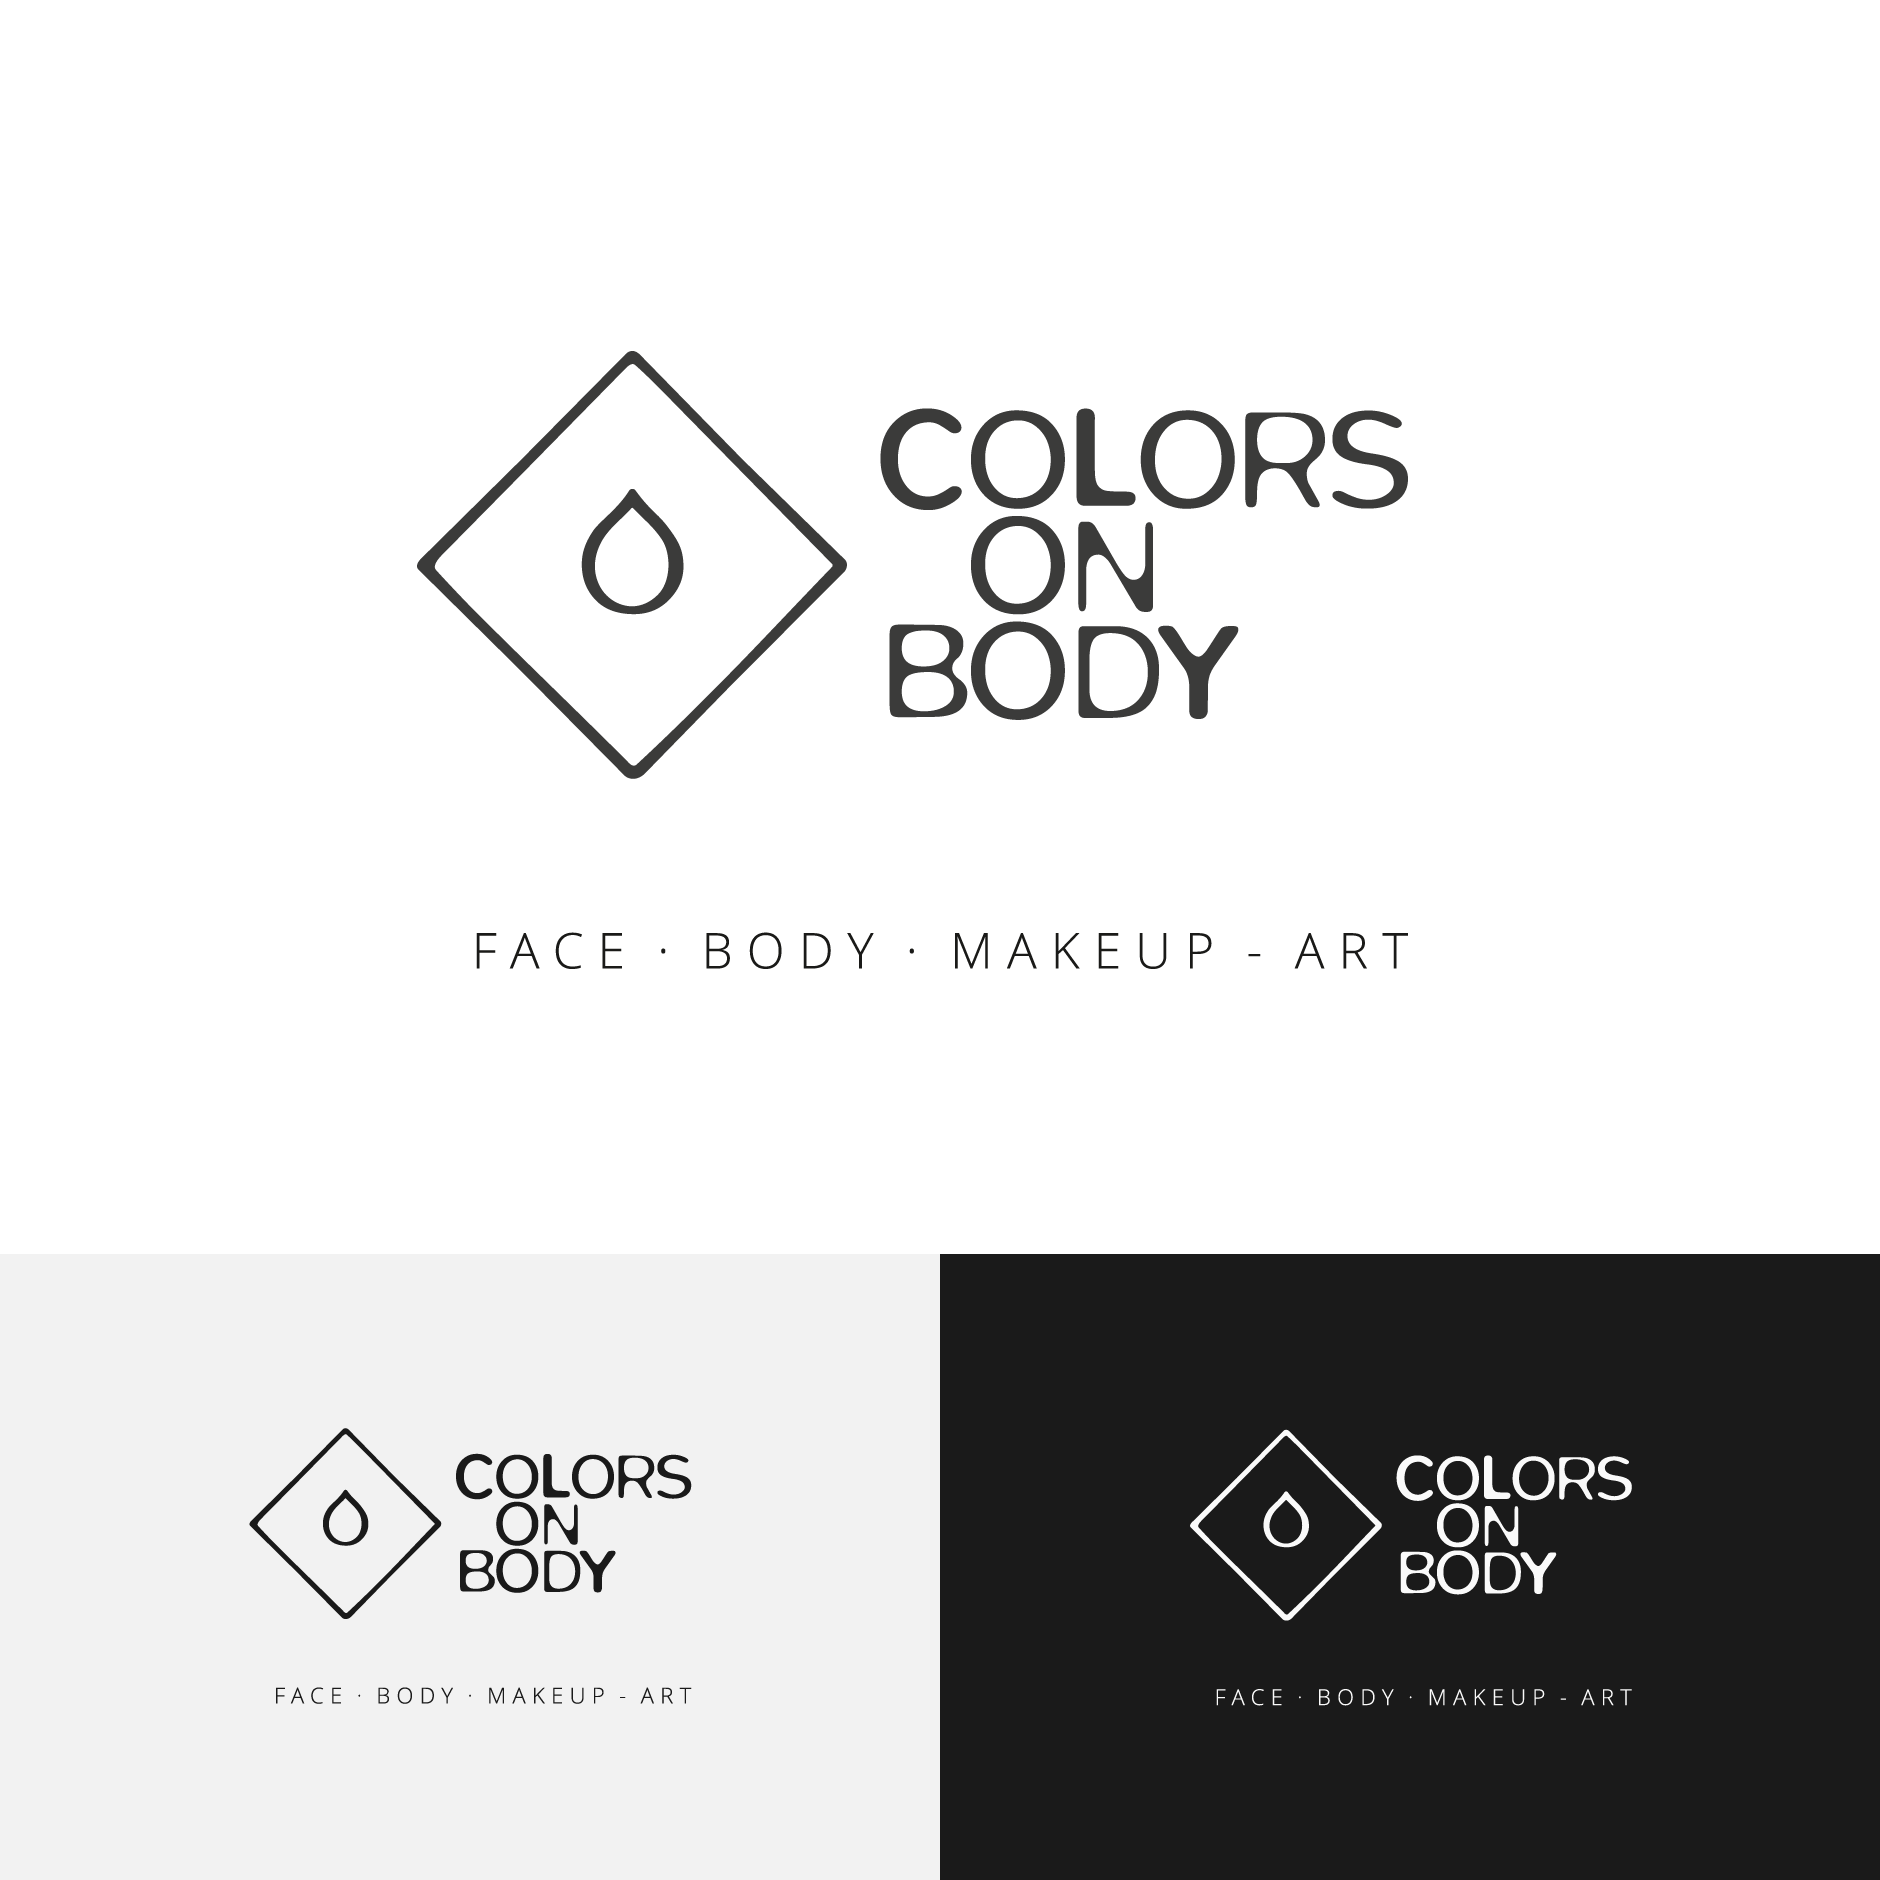 colors on body facepainting bodypainting logodesign-Colors on Body Logodesign